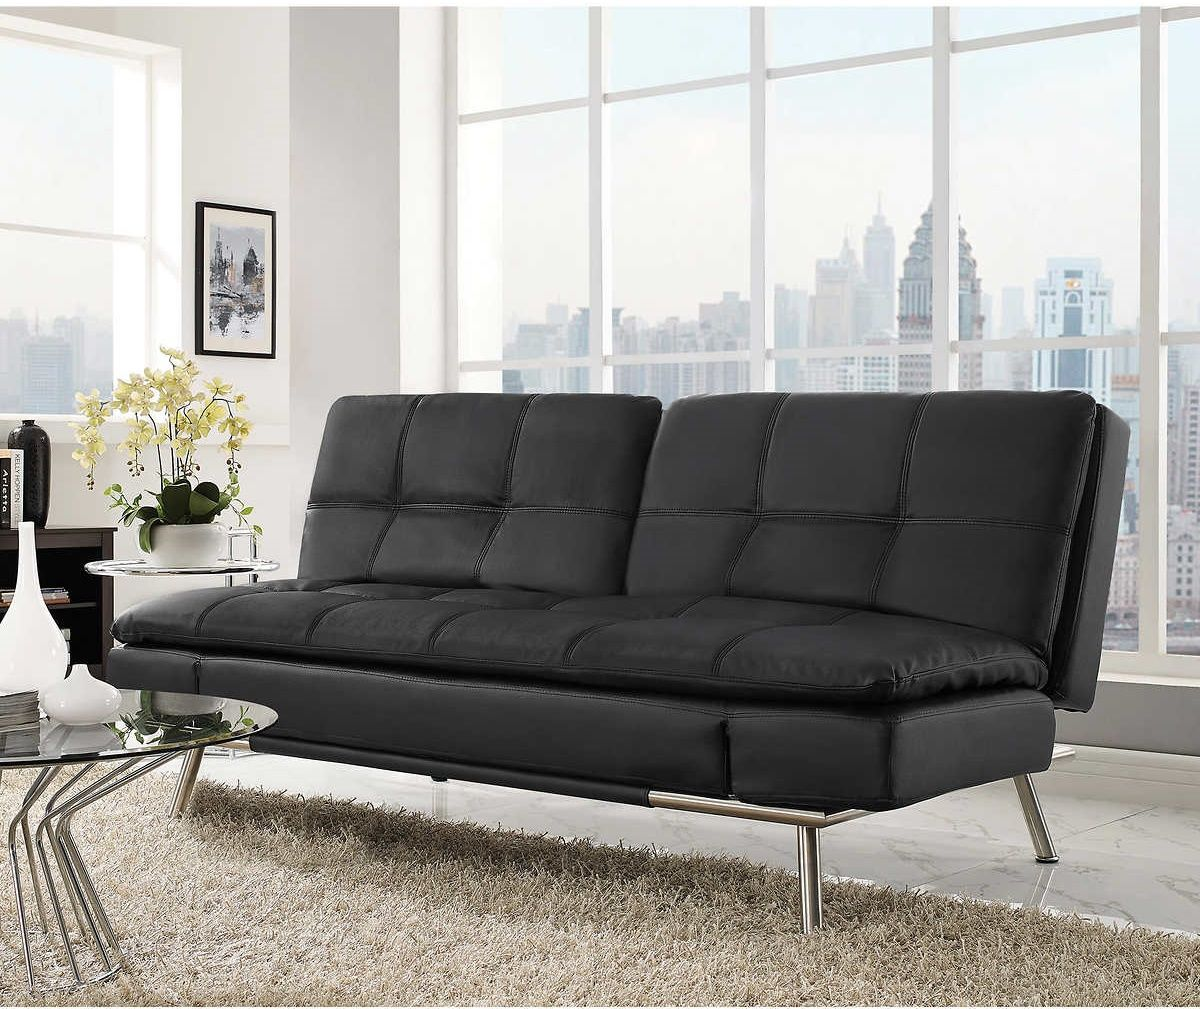 sensational sofa bed target concept-Best Of sofa Bed Target Collection